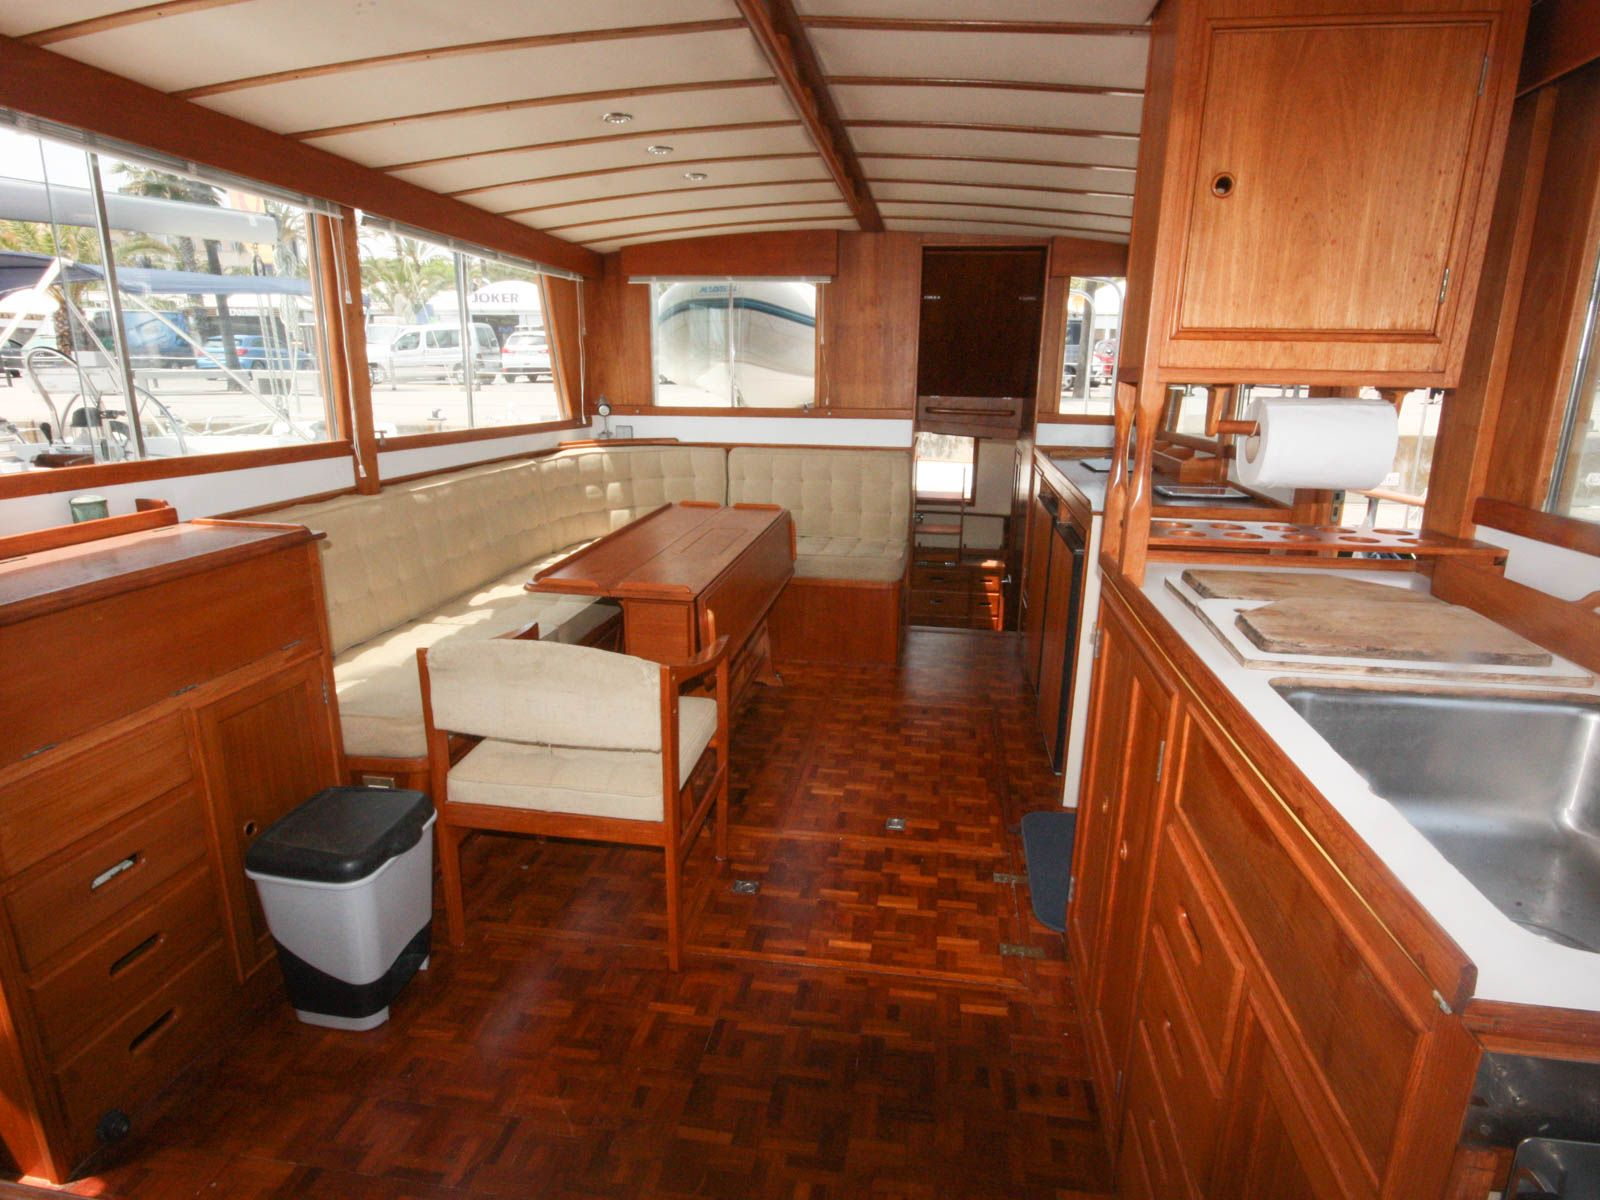 New Listing - Grand Banks 42 Classic | Boatshed Barcelona | Boat interior design, Boat interior, Yacht interior